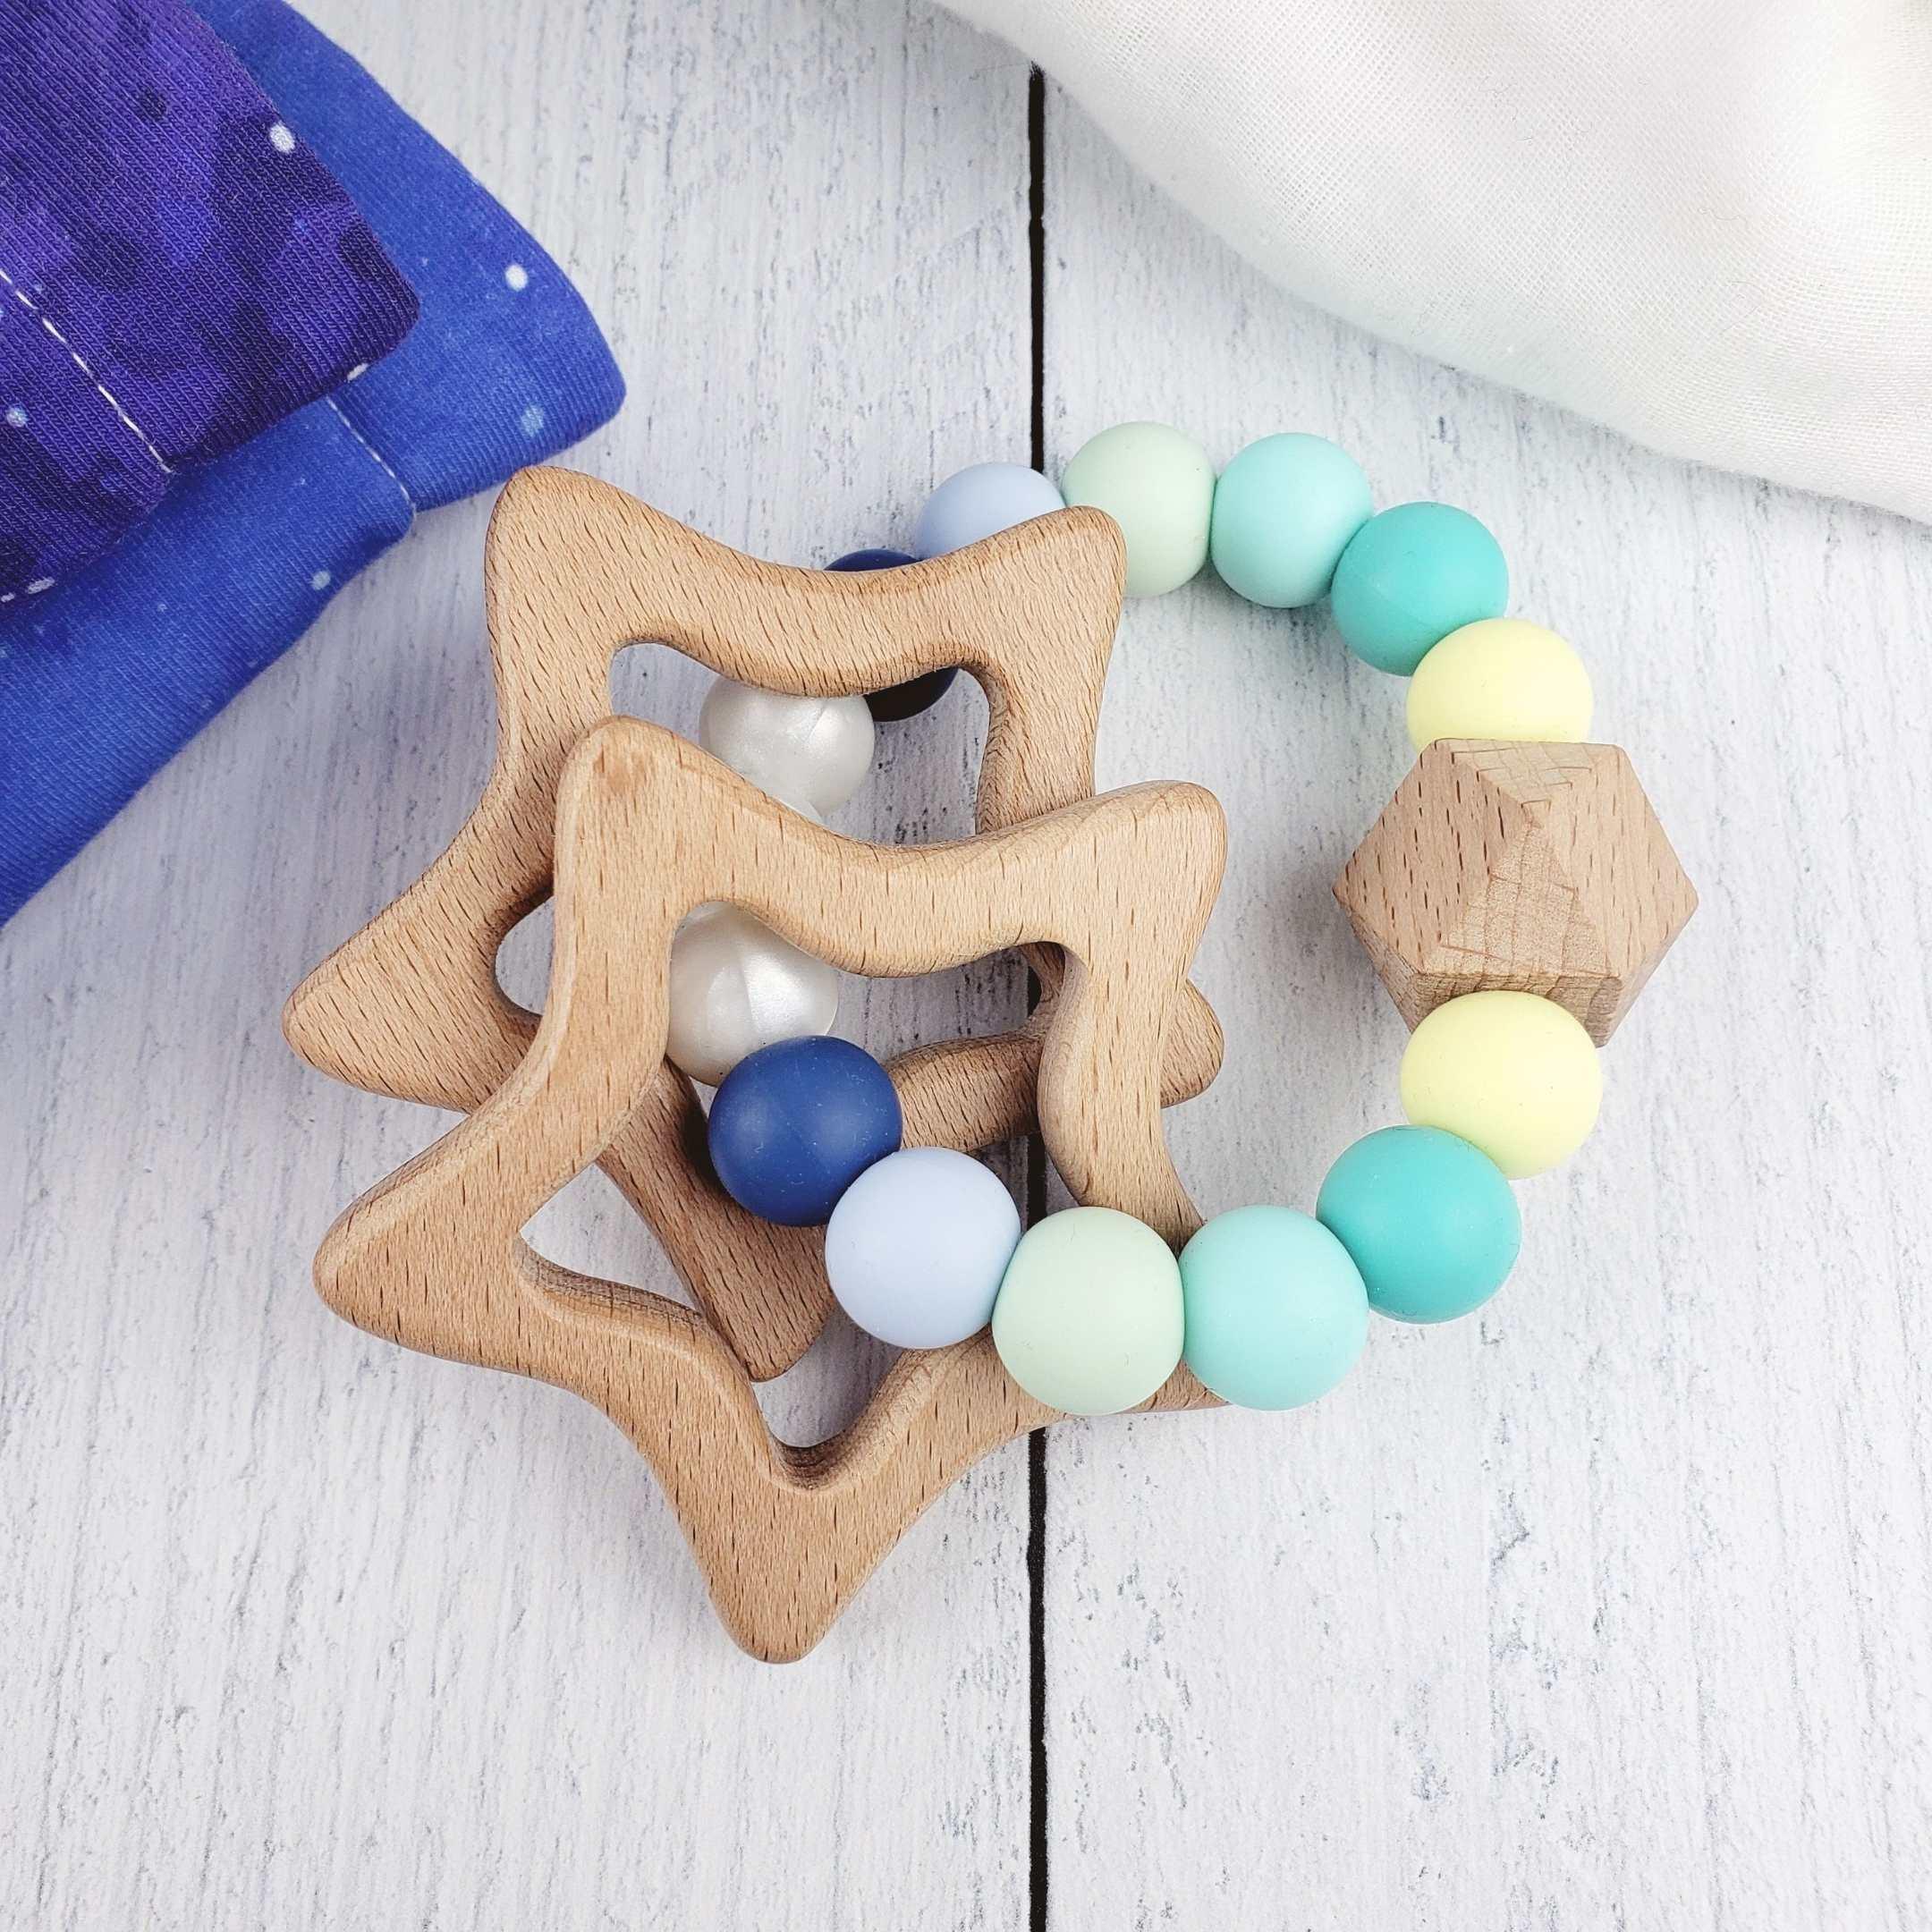 Star Rattle Teething Ring - Teal Blue